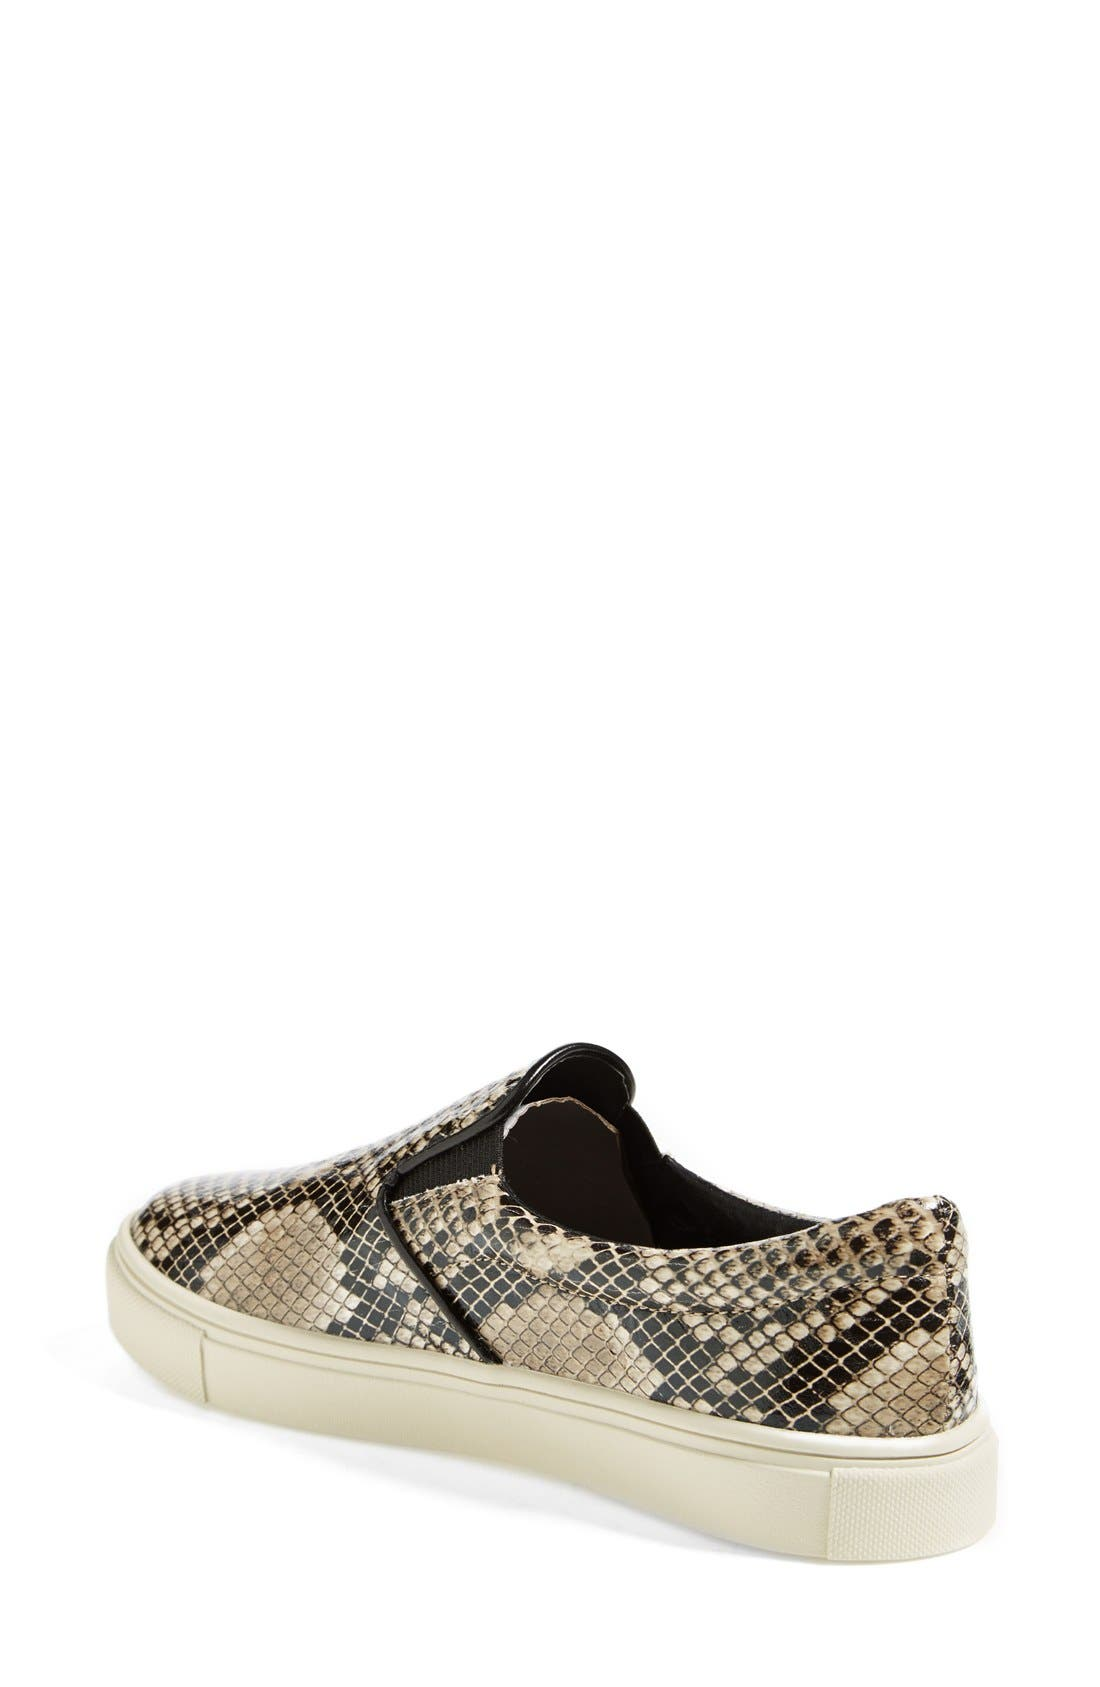 'Ecntrc-c' Snake-Embossed Slip-On Sneaker,                             Alternate thumbnail 4, color,